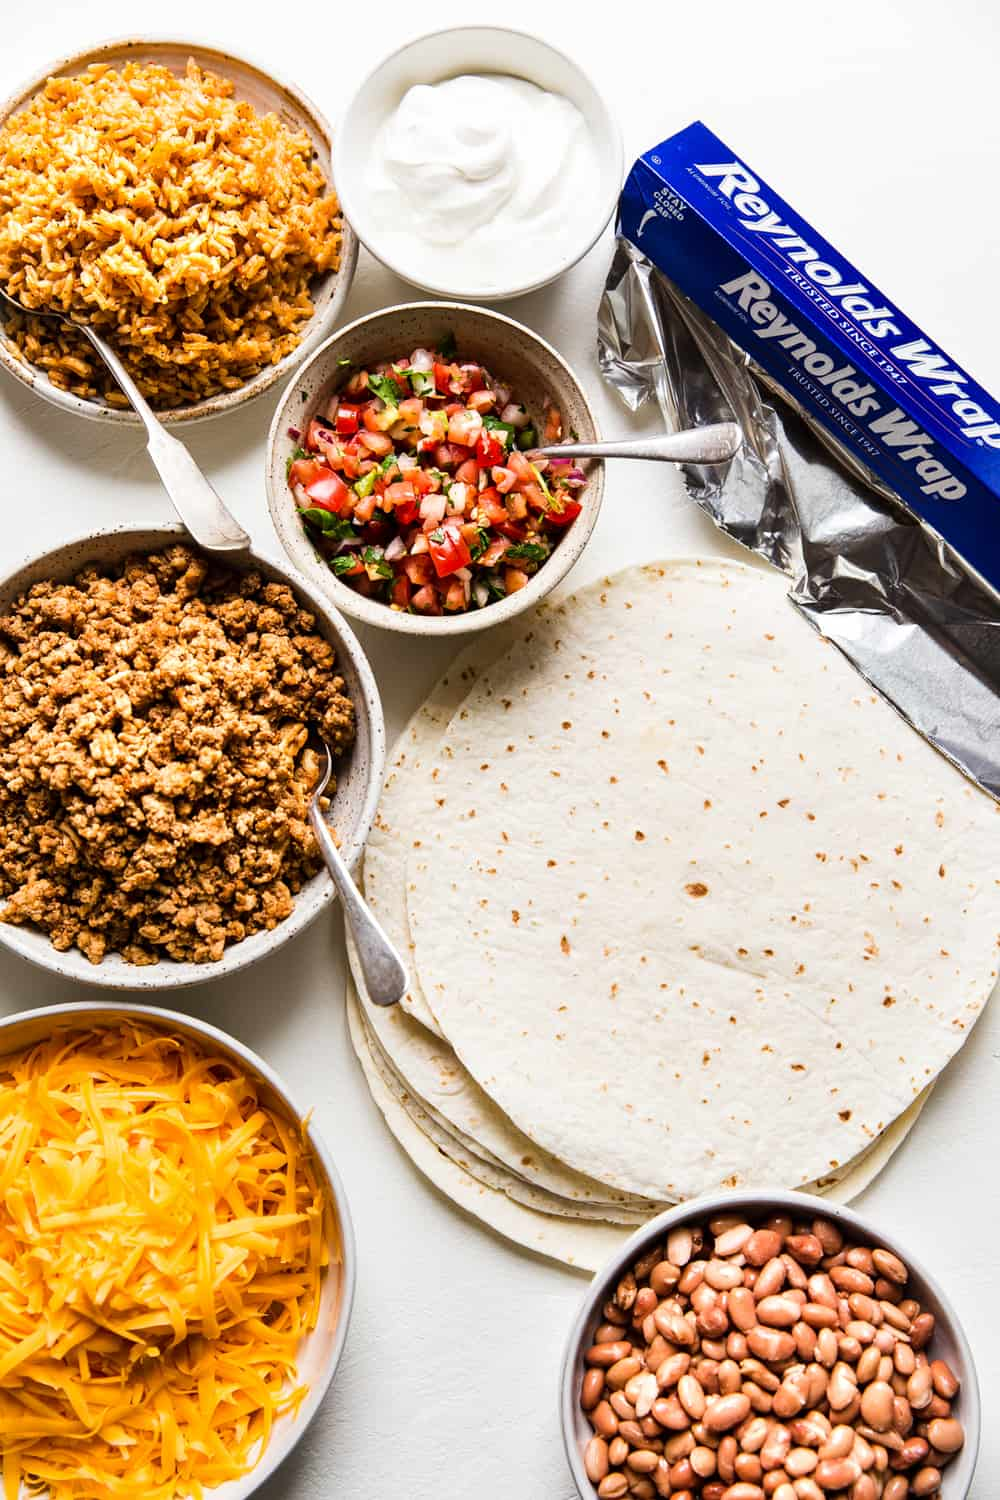 All the ingredients for a burrito. Meat, cheese, tortillas, salsa, rice, beans, aluminum foil.